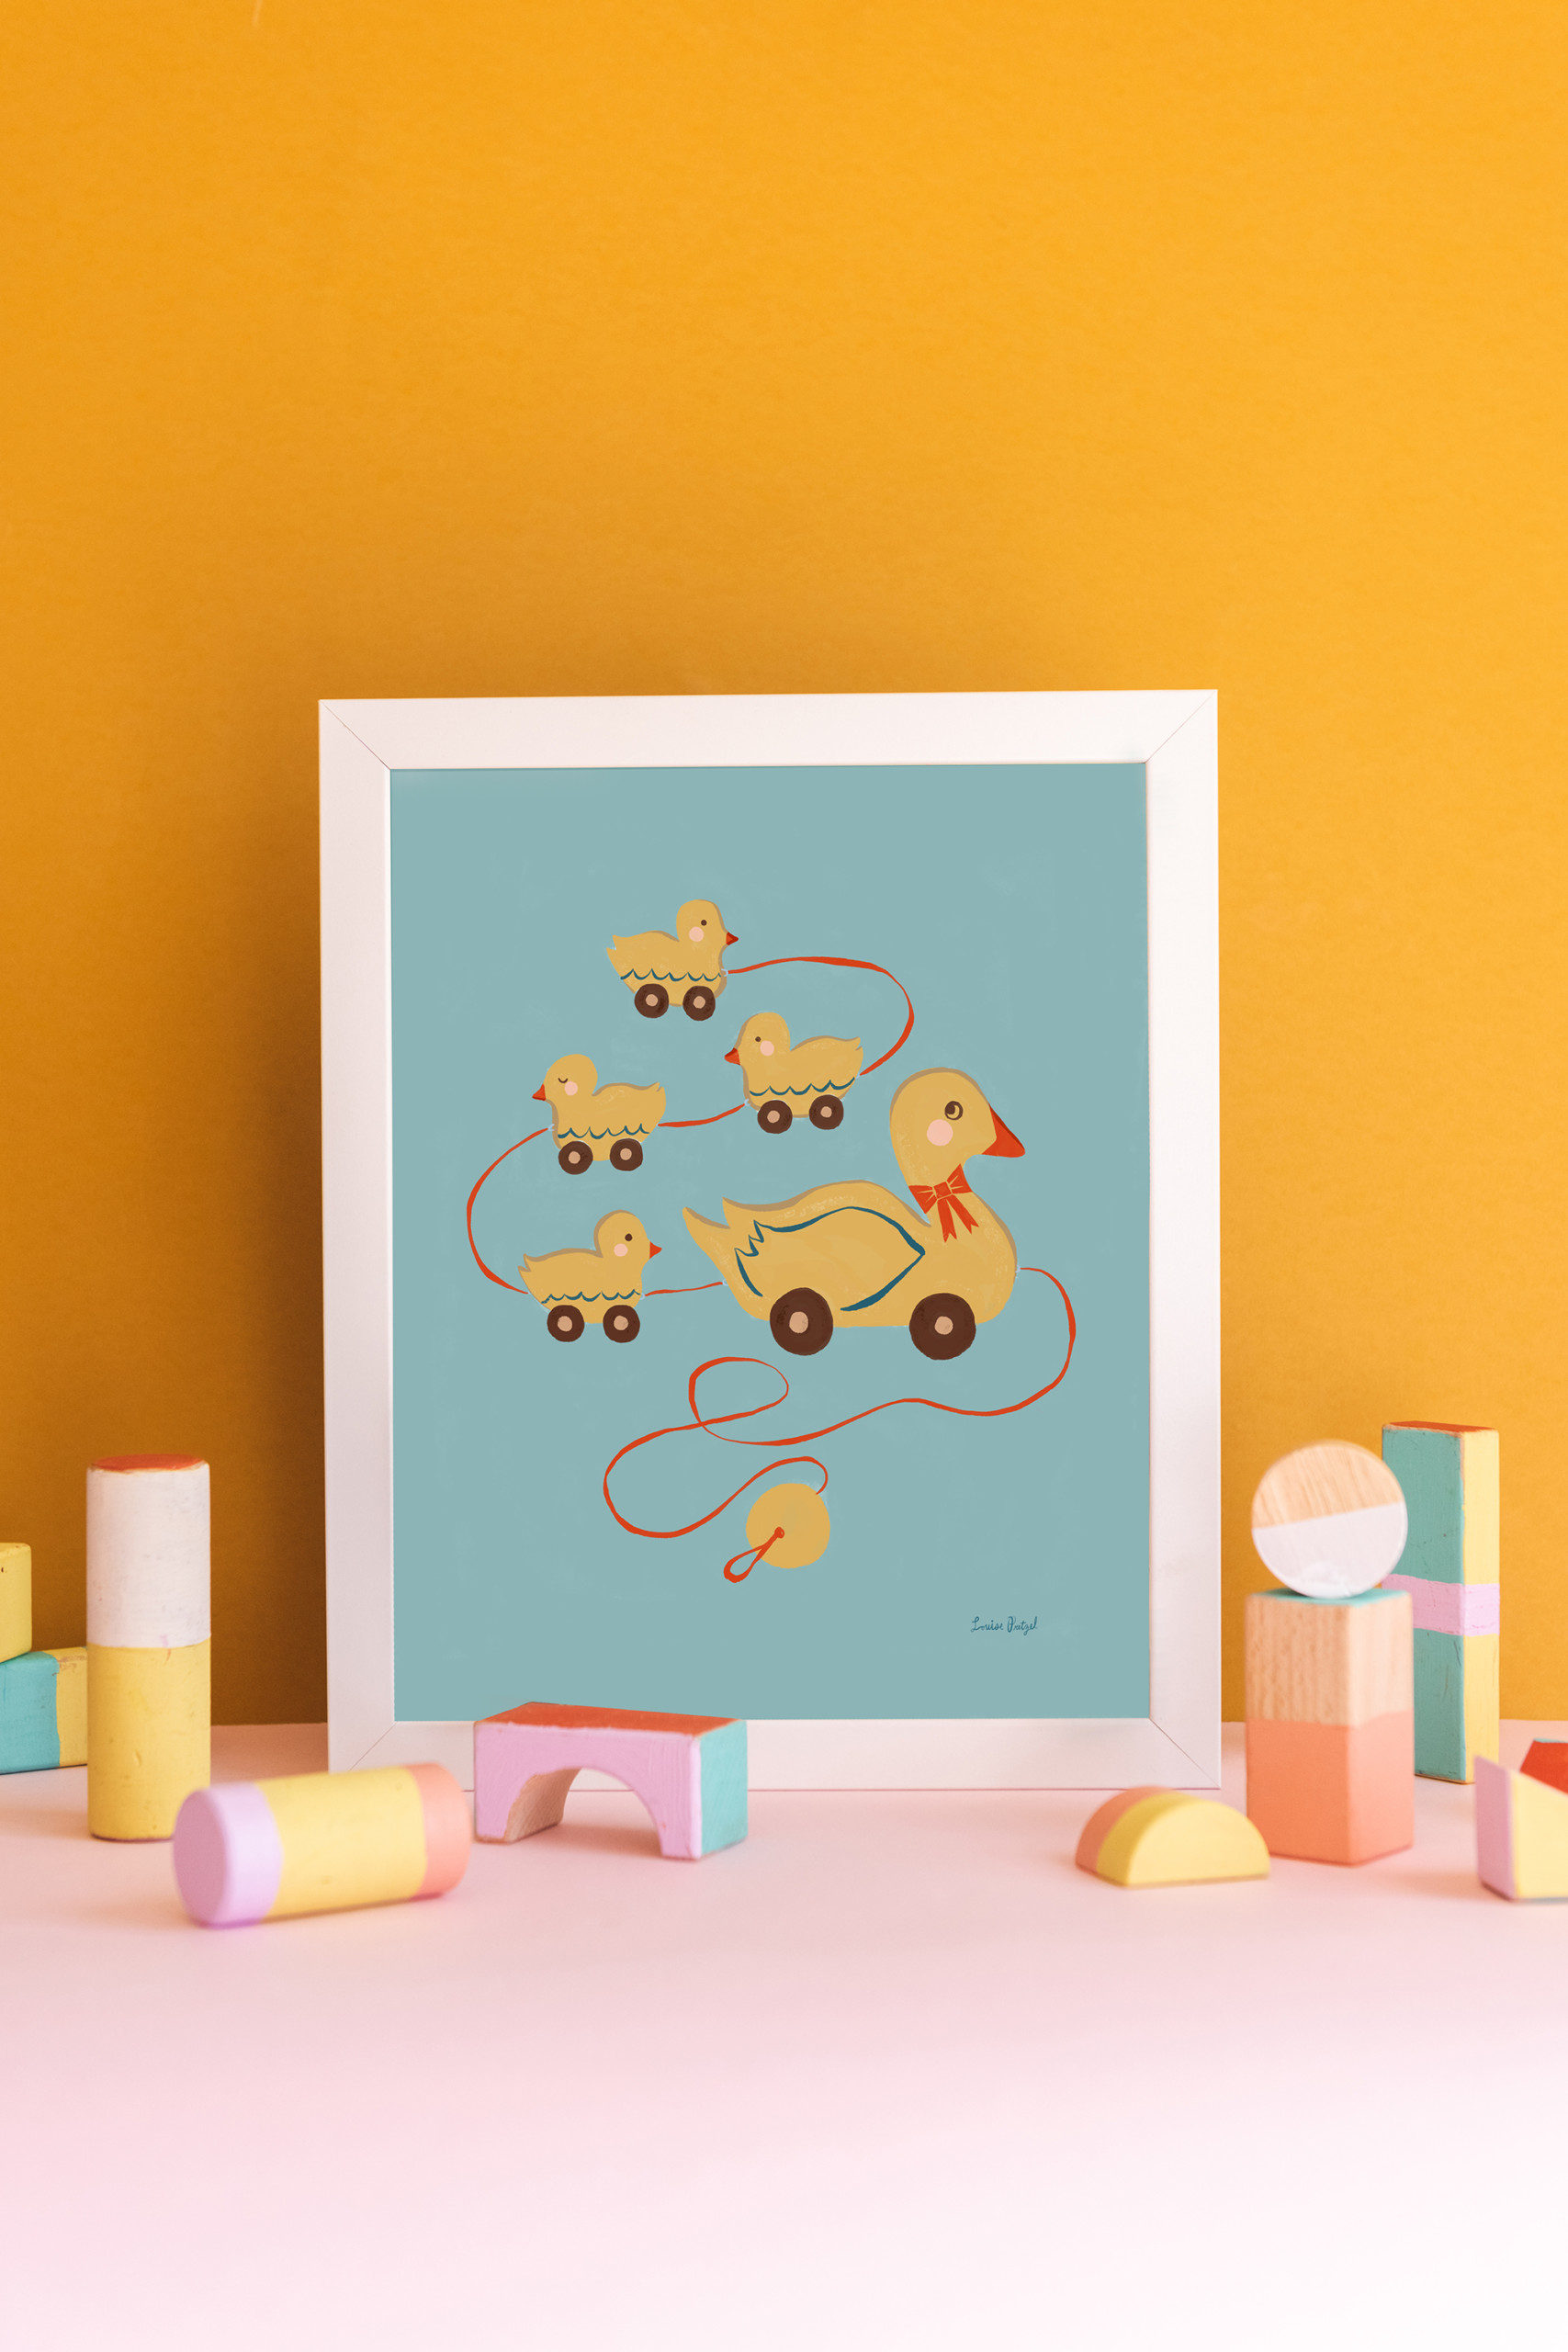 A print of Louise Pretzel's Pull Duck Toy against a gold background. Pastel wooden block toys are arranged in front.